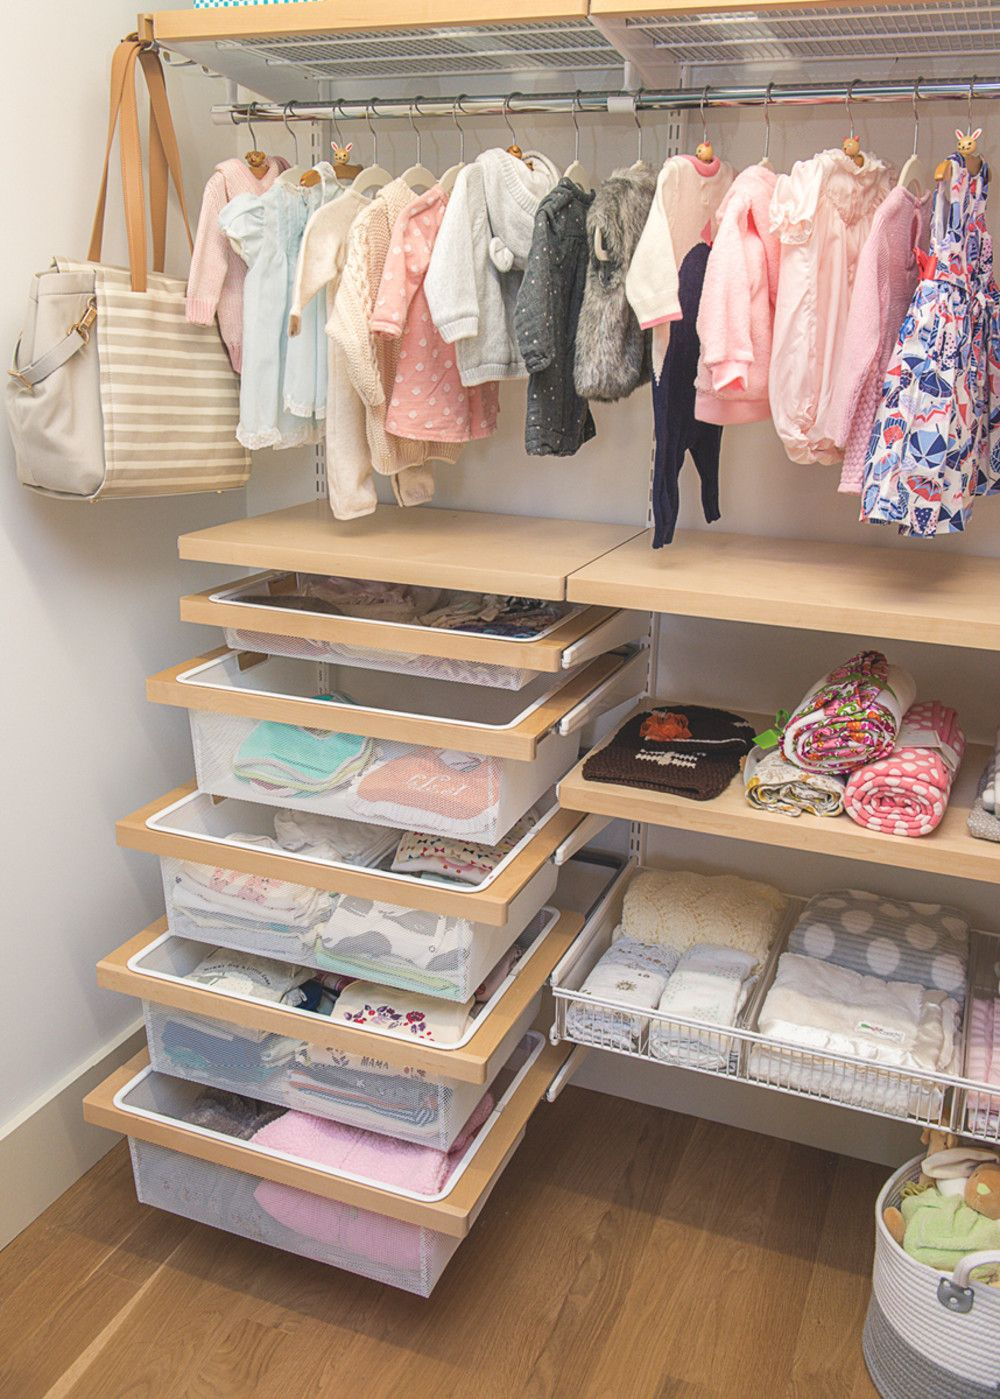 Closet Organization Hooks For Diaper Bag Shelves Baskets Baby